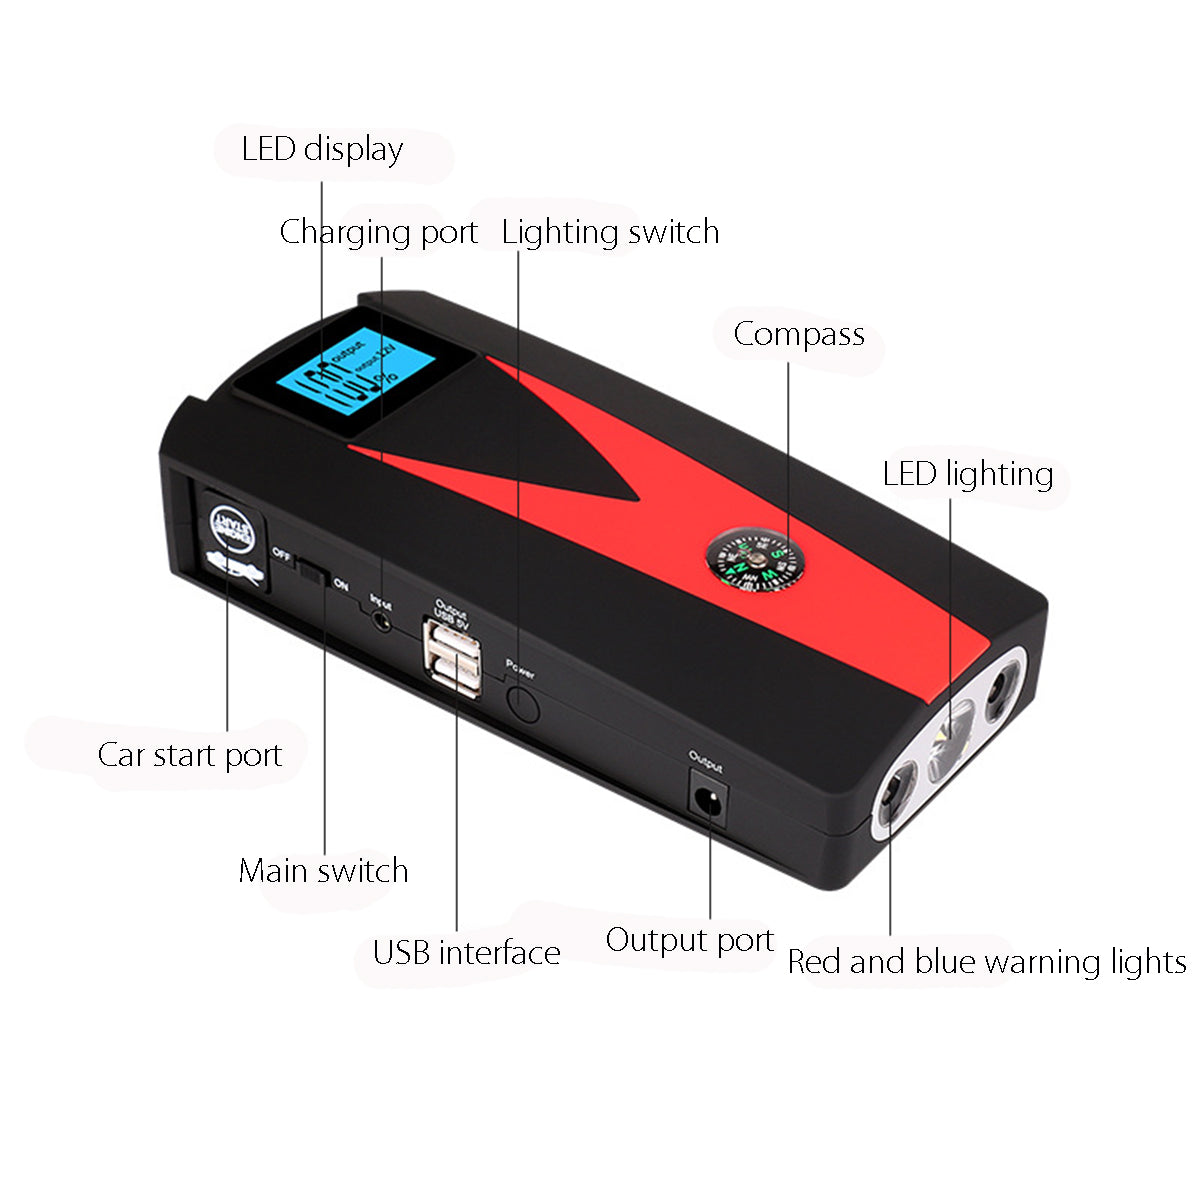 Skyorium™ 99900 mAh Dual USB Car Jump Starter LCD Auto Battery Booster Portable Power Pack with Jumper Cables - US Plug